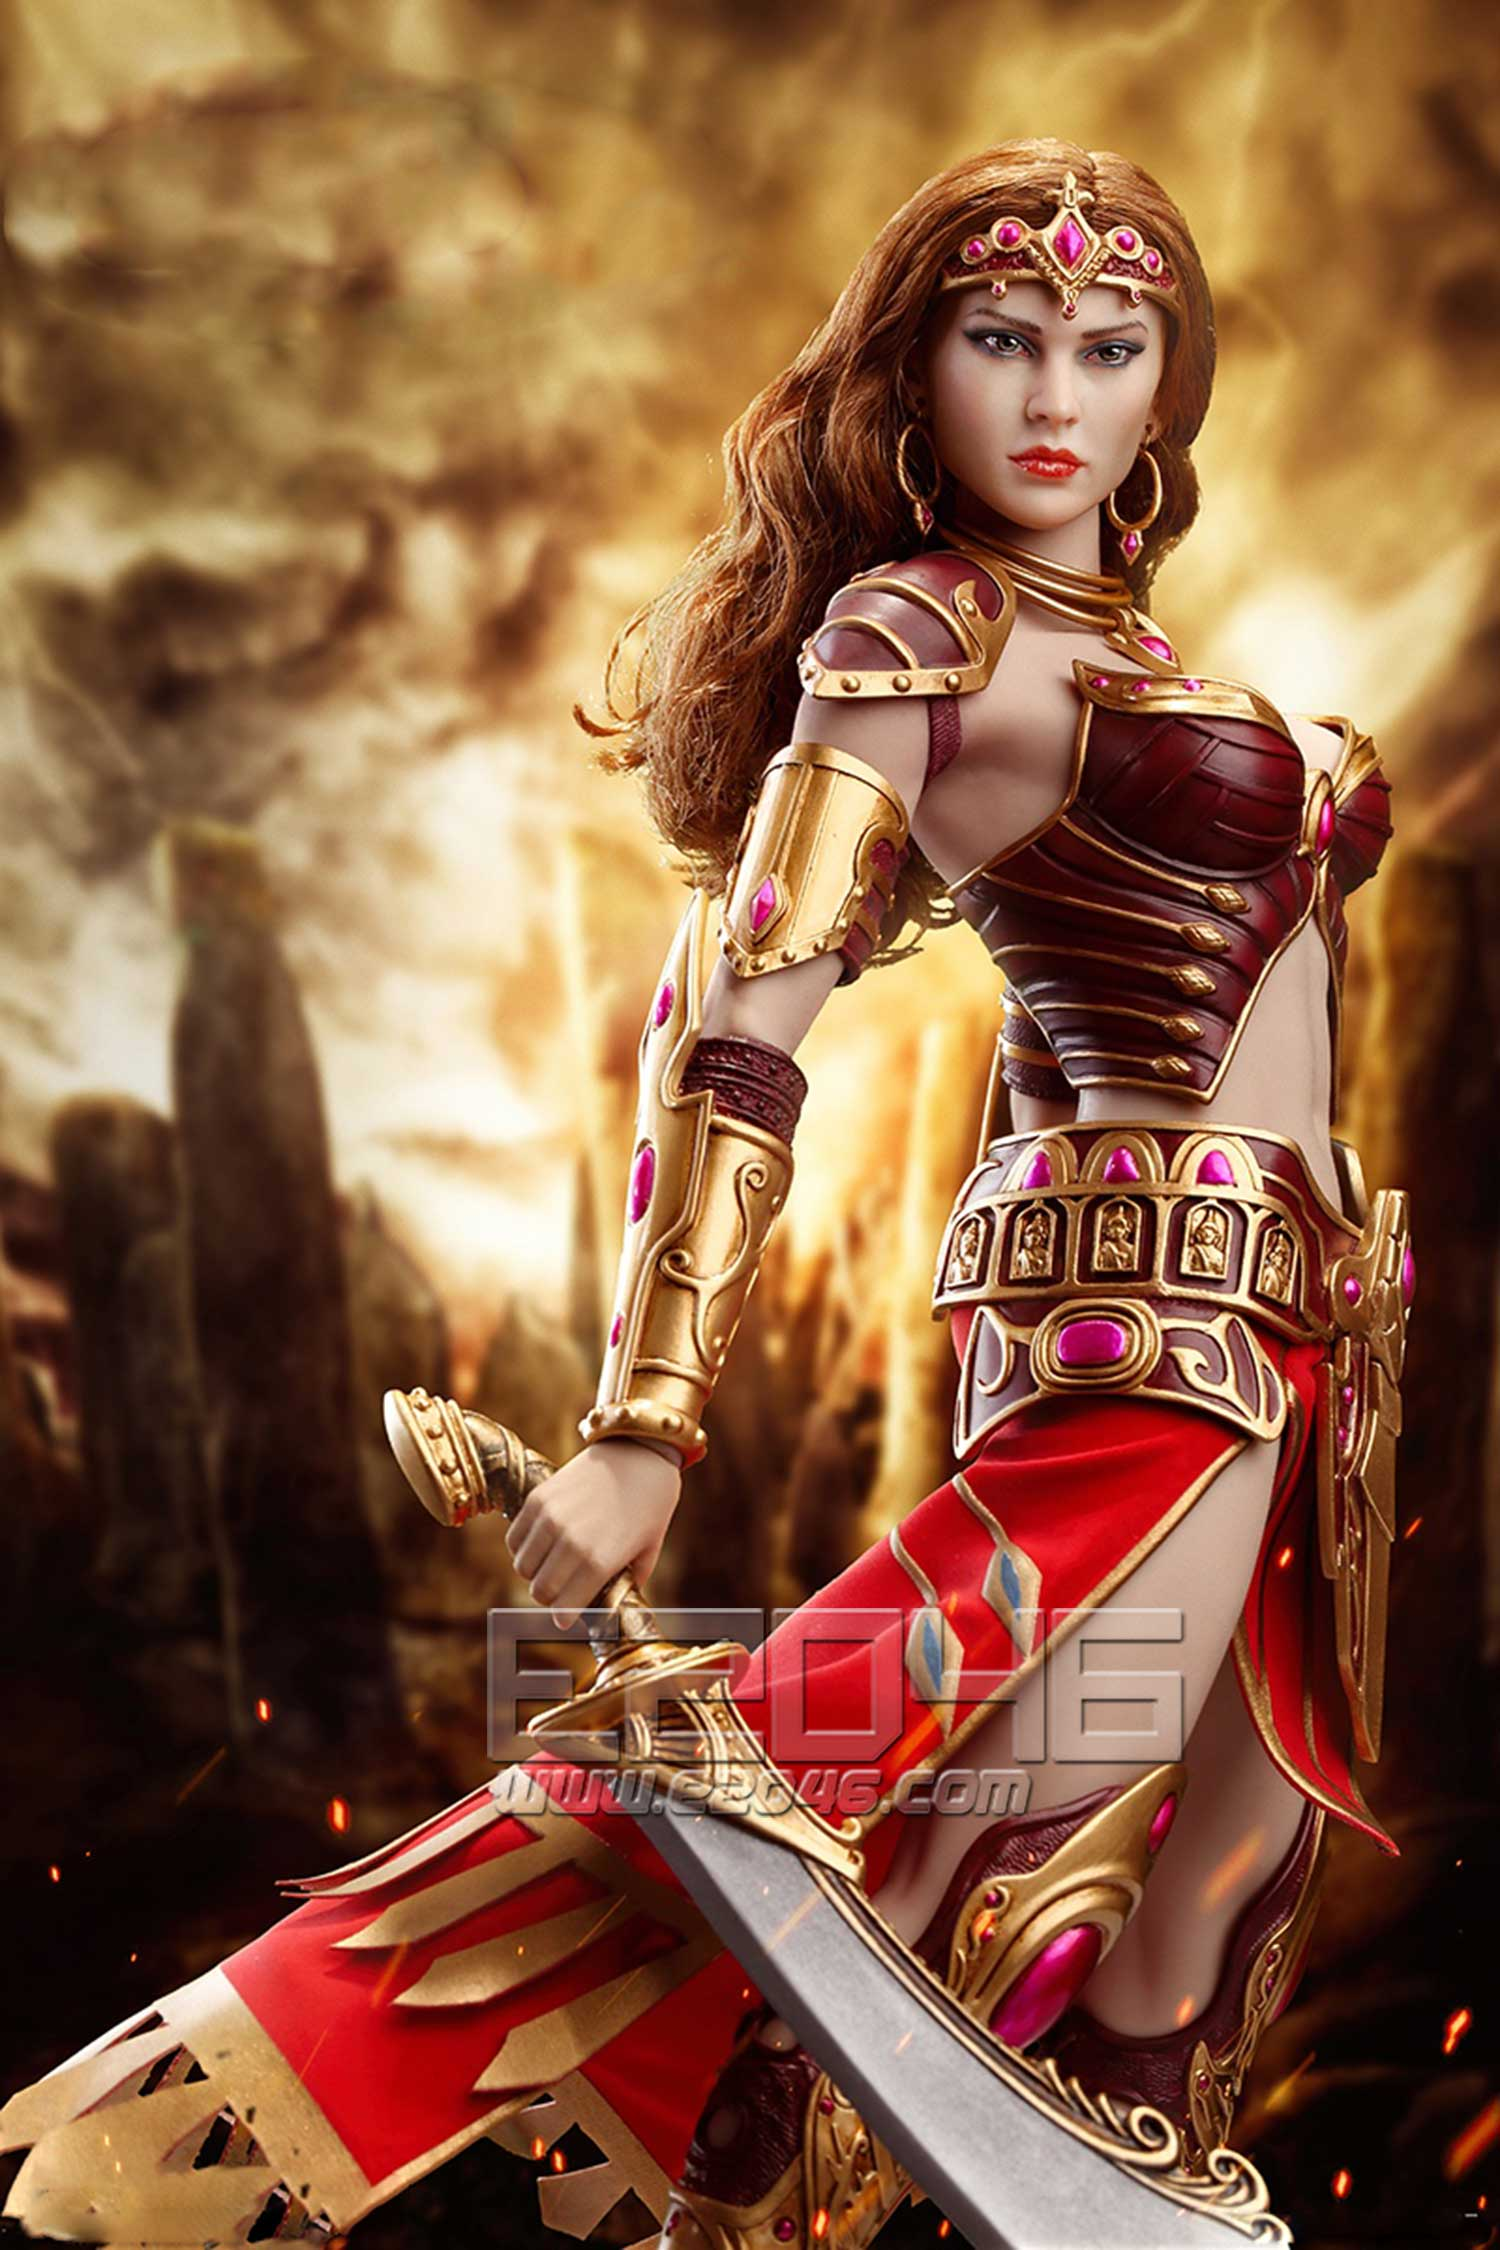 Fighter Woman (DOLL)